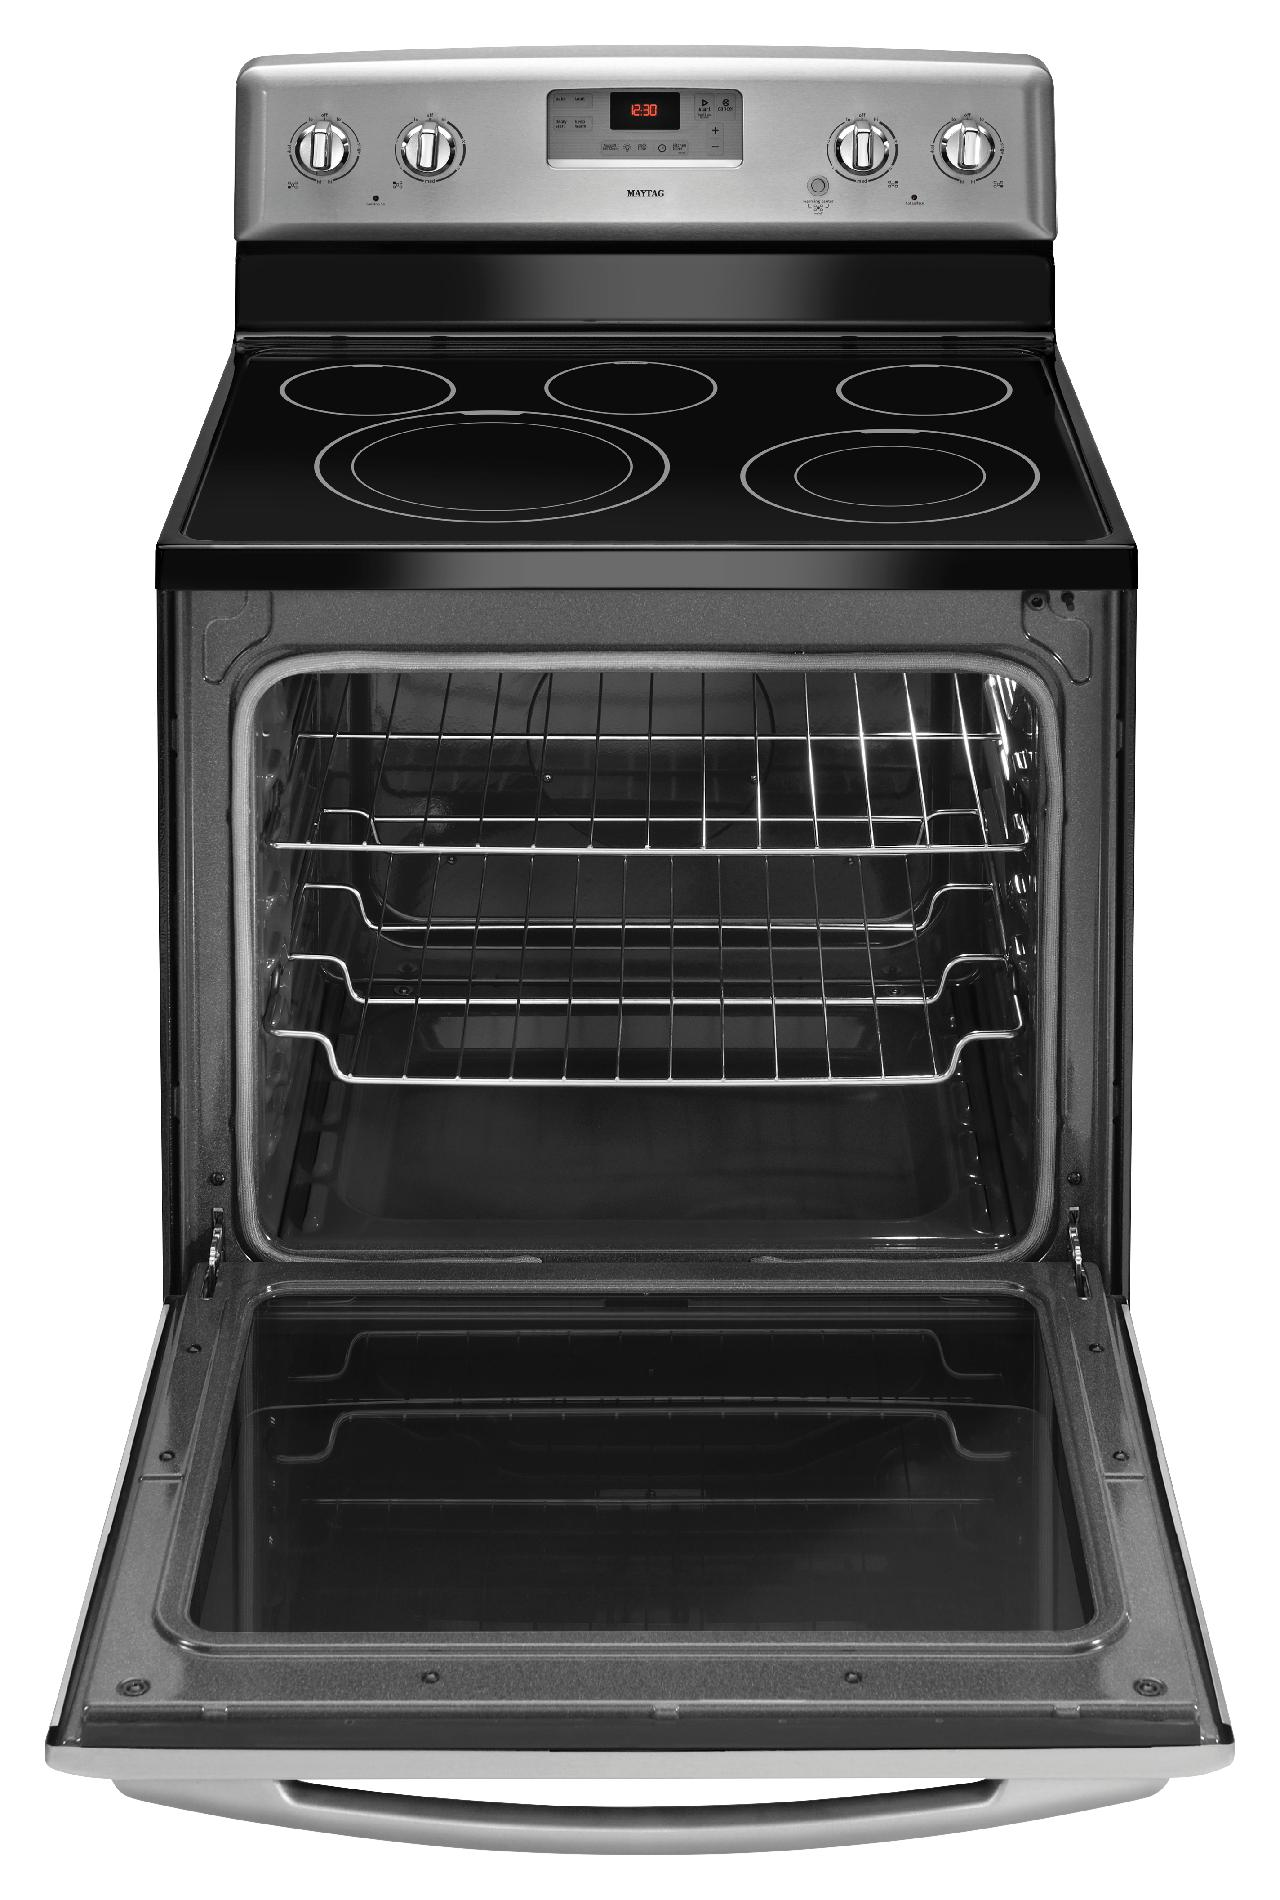 Maytag 6.2 cu. ft. Electric Range w/ Aqua-Lift® Technology - Stainless Steel